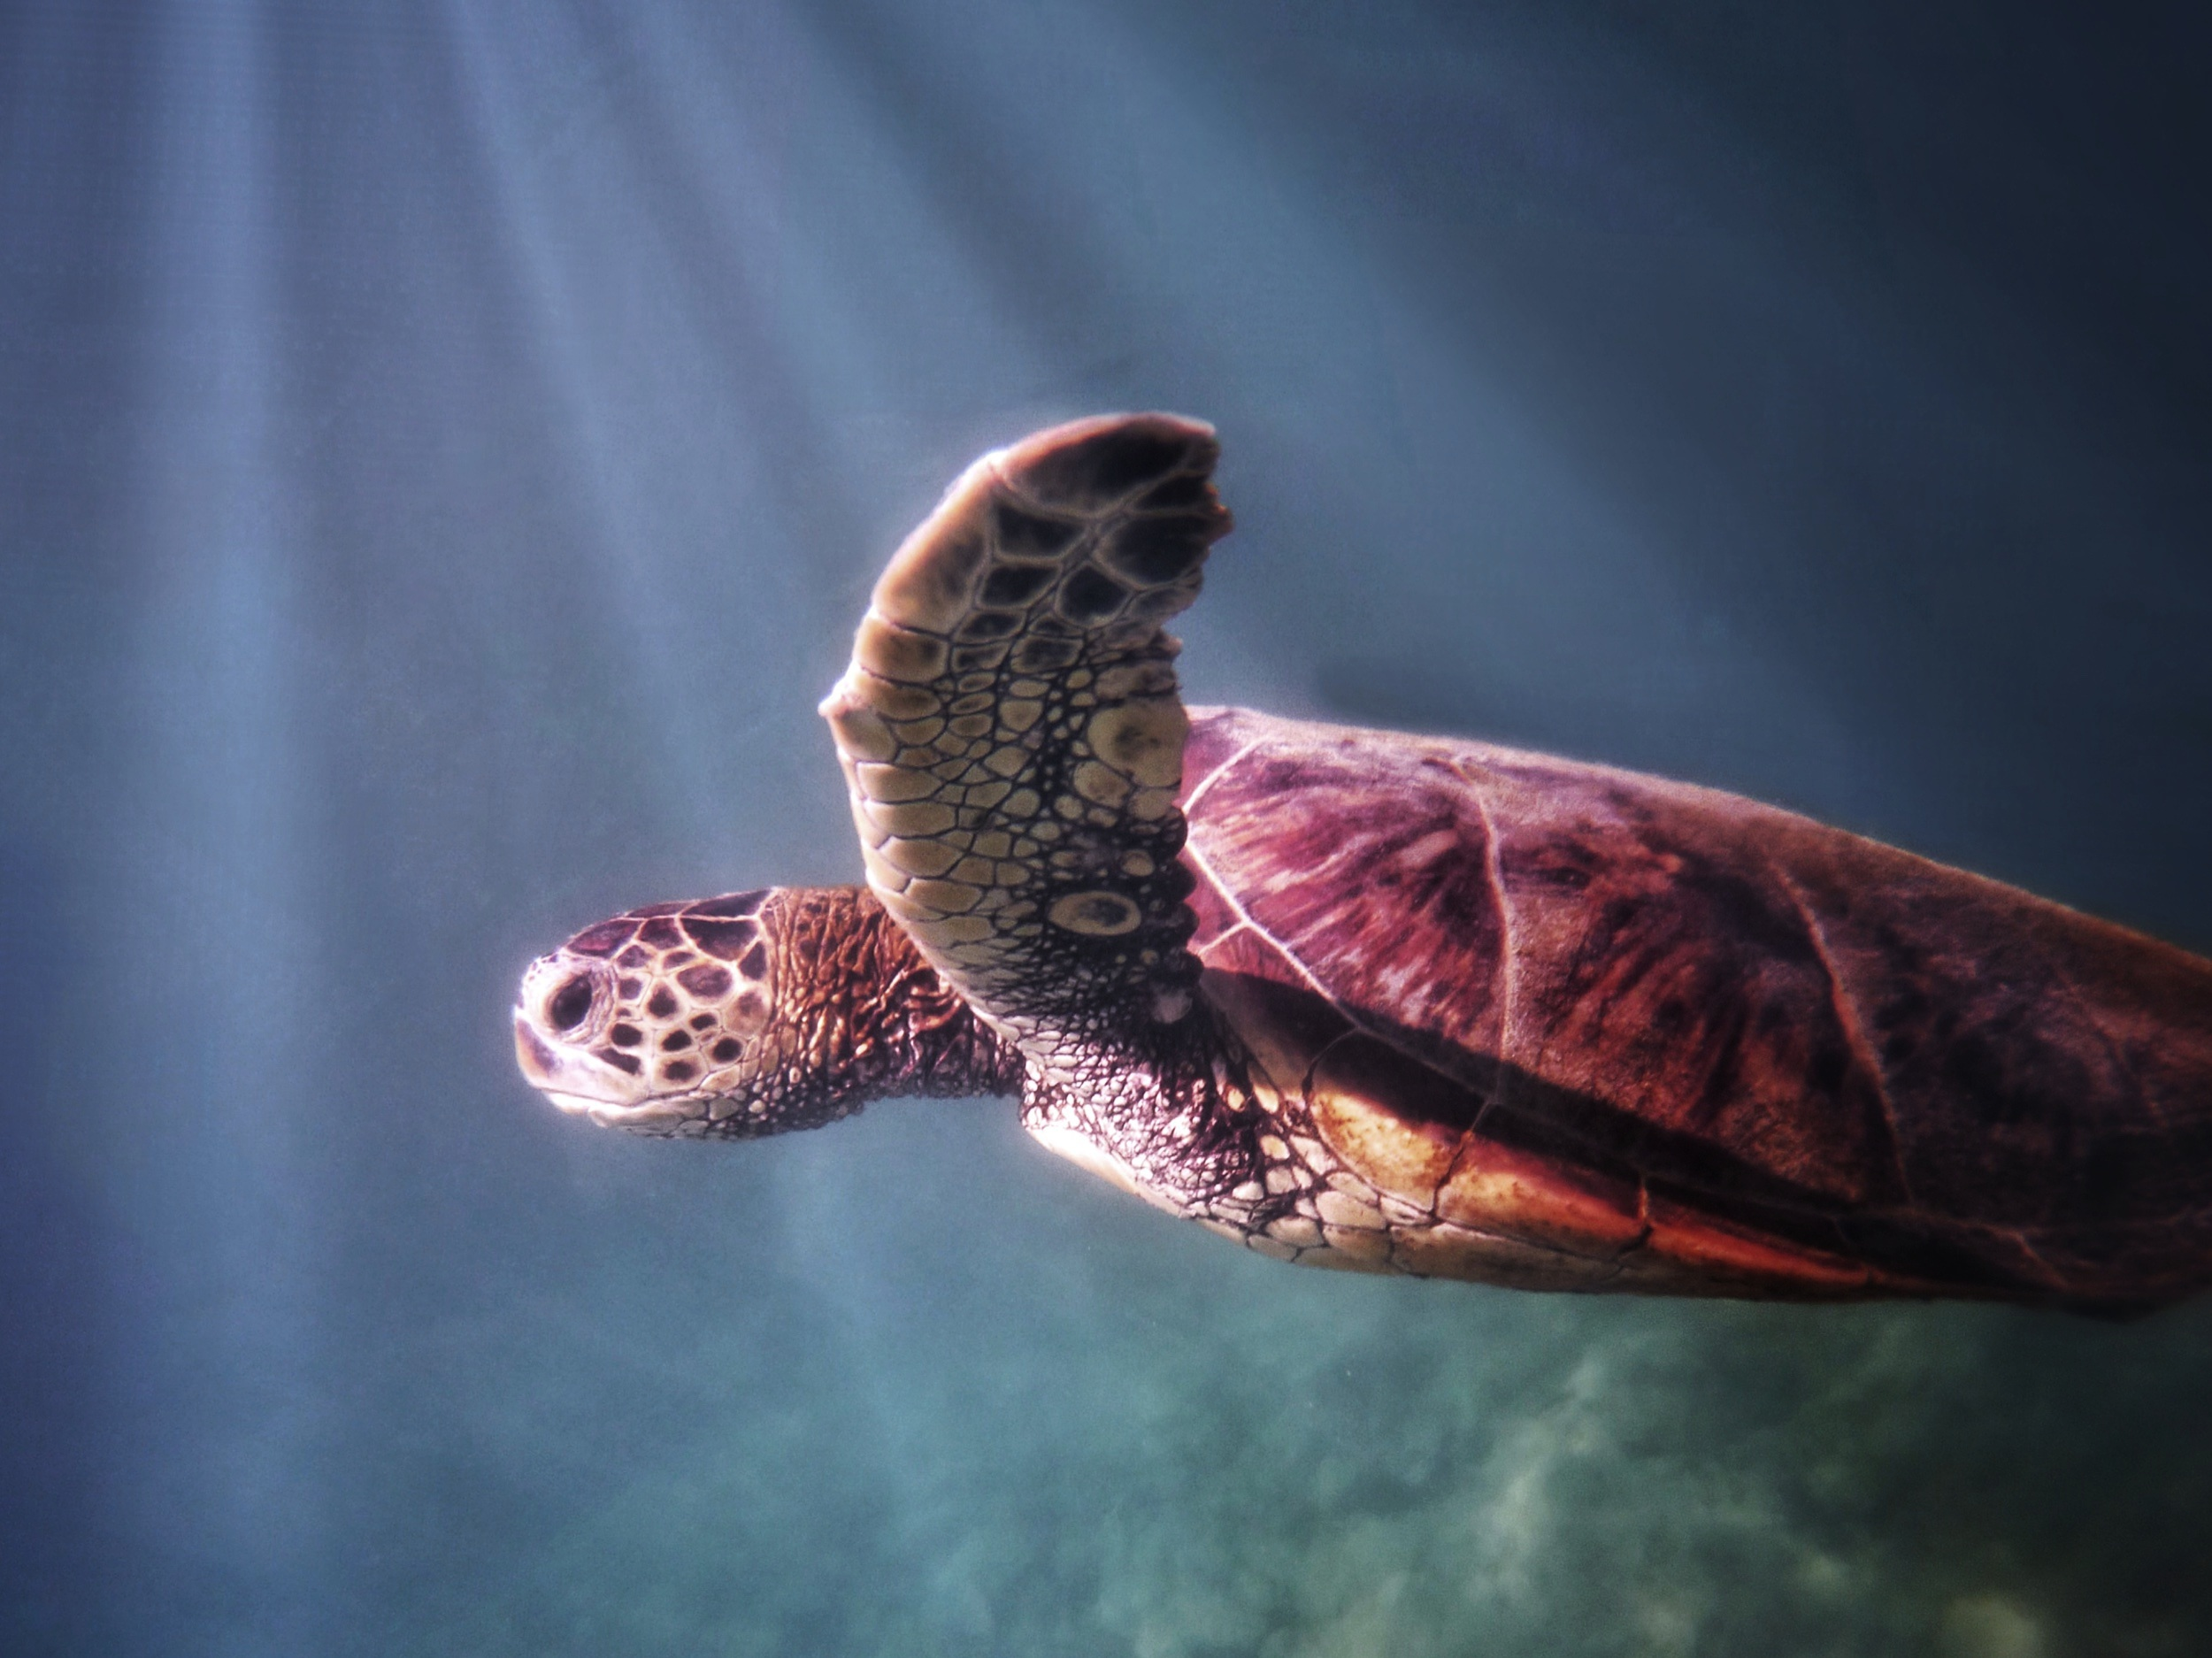 404. - Sorry, I am swimming with the turtles. Click HERE to try again